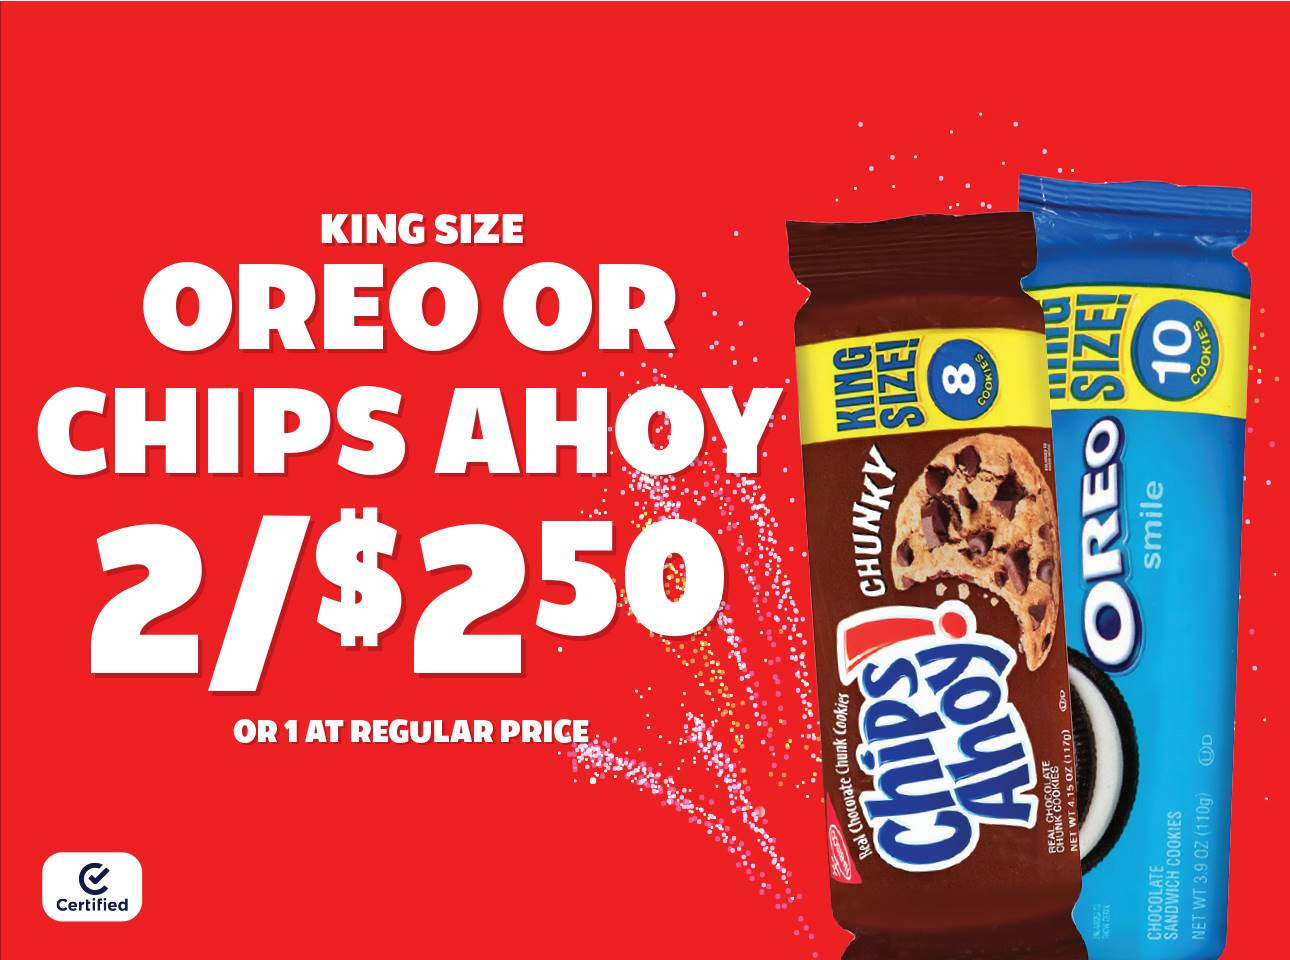 King Size Oreo or Chip Ahoy 2 for $2.50 or 1 at Reg Price